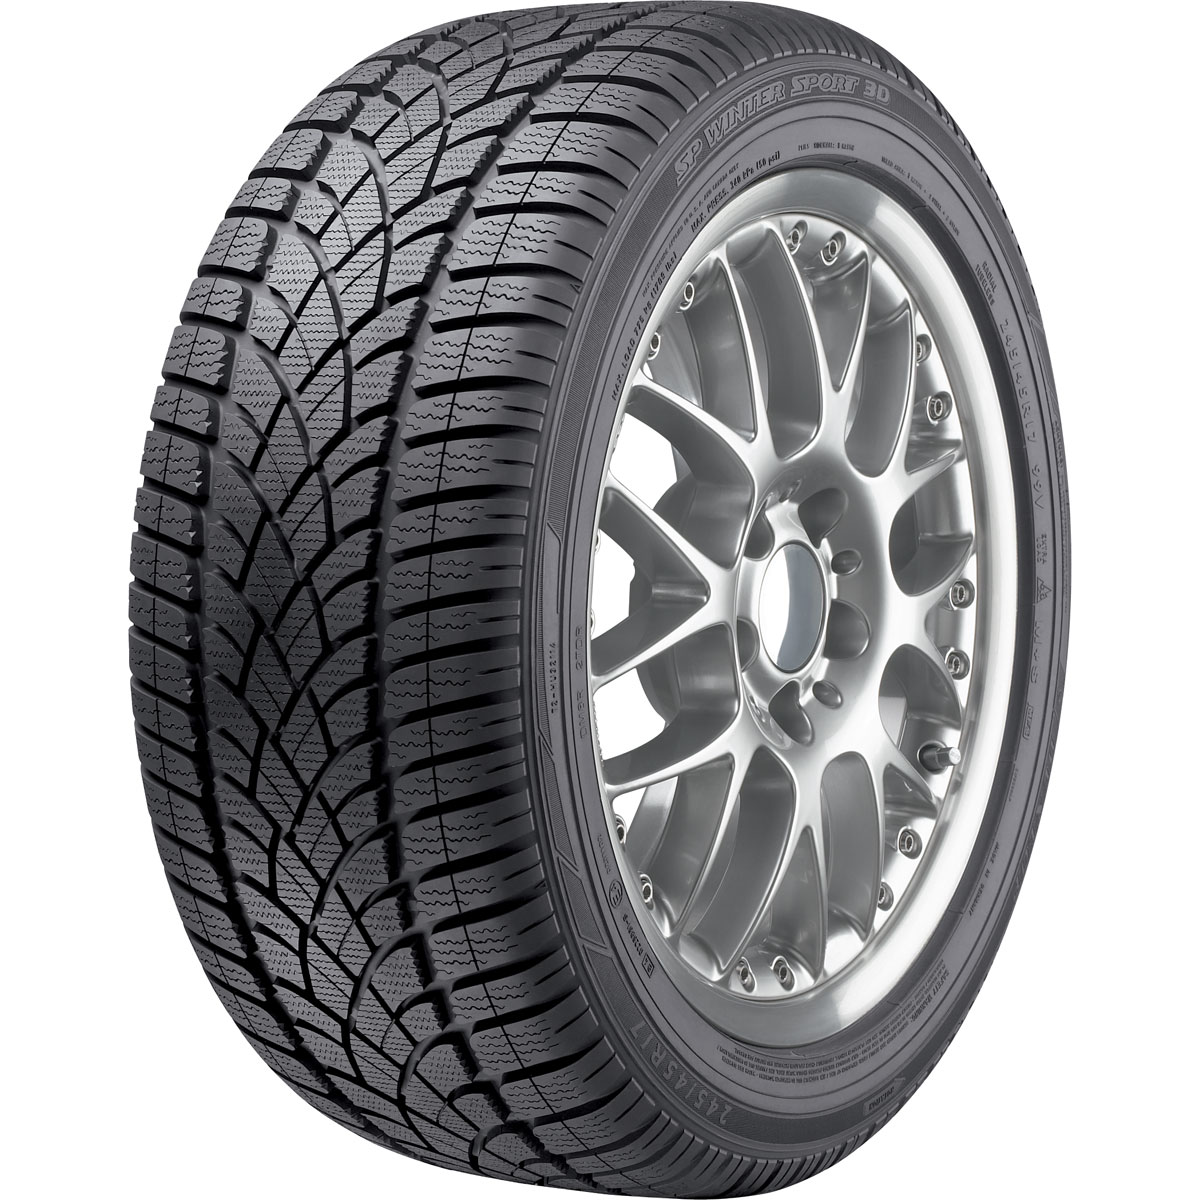 Anvelopa iarna DUNLOP SP WINTERSPORT 3D 235/45 R19 99V